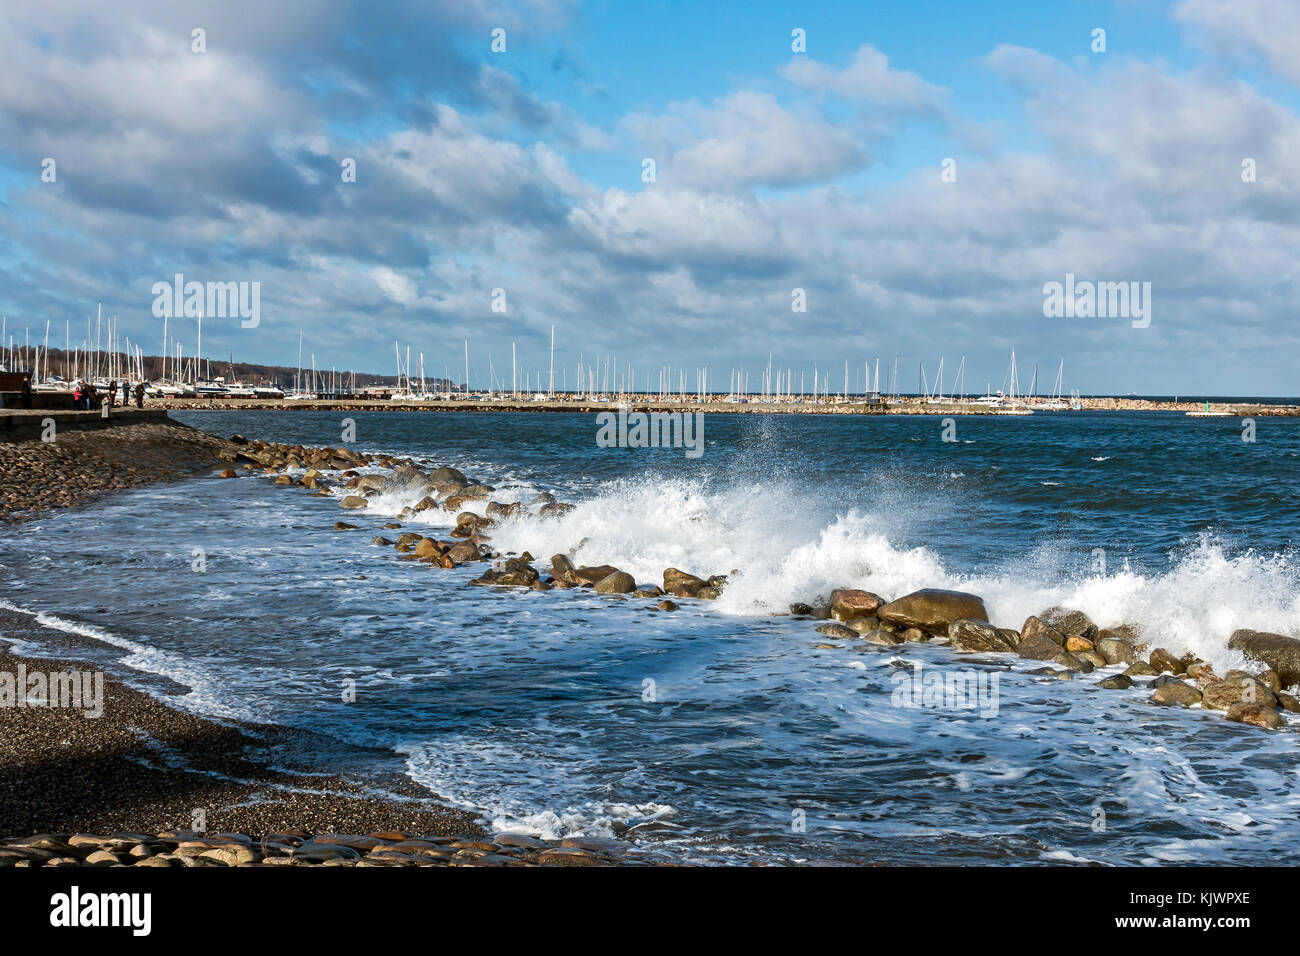 Breakwater at Elsinore Sealand Denmark Europe with the Nordhavnen (North Harbour) in the background. - Stock Image